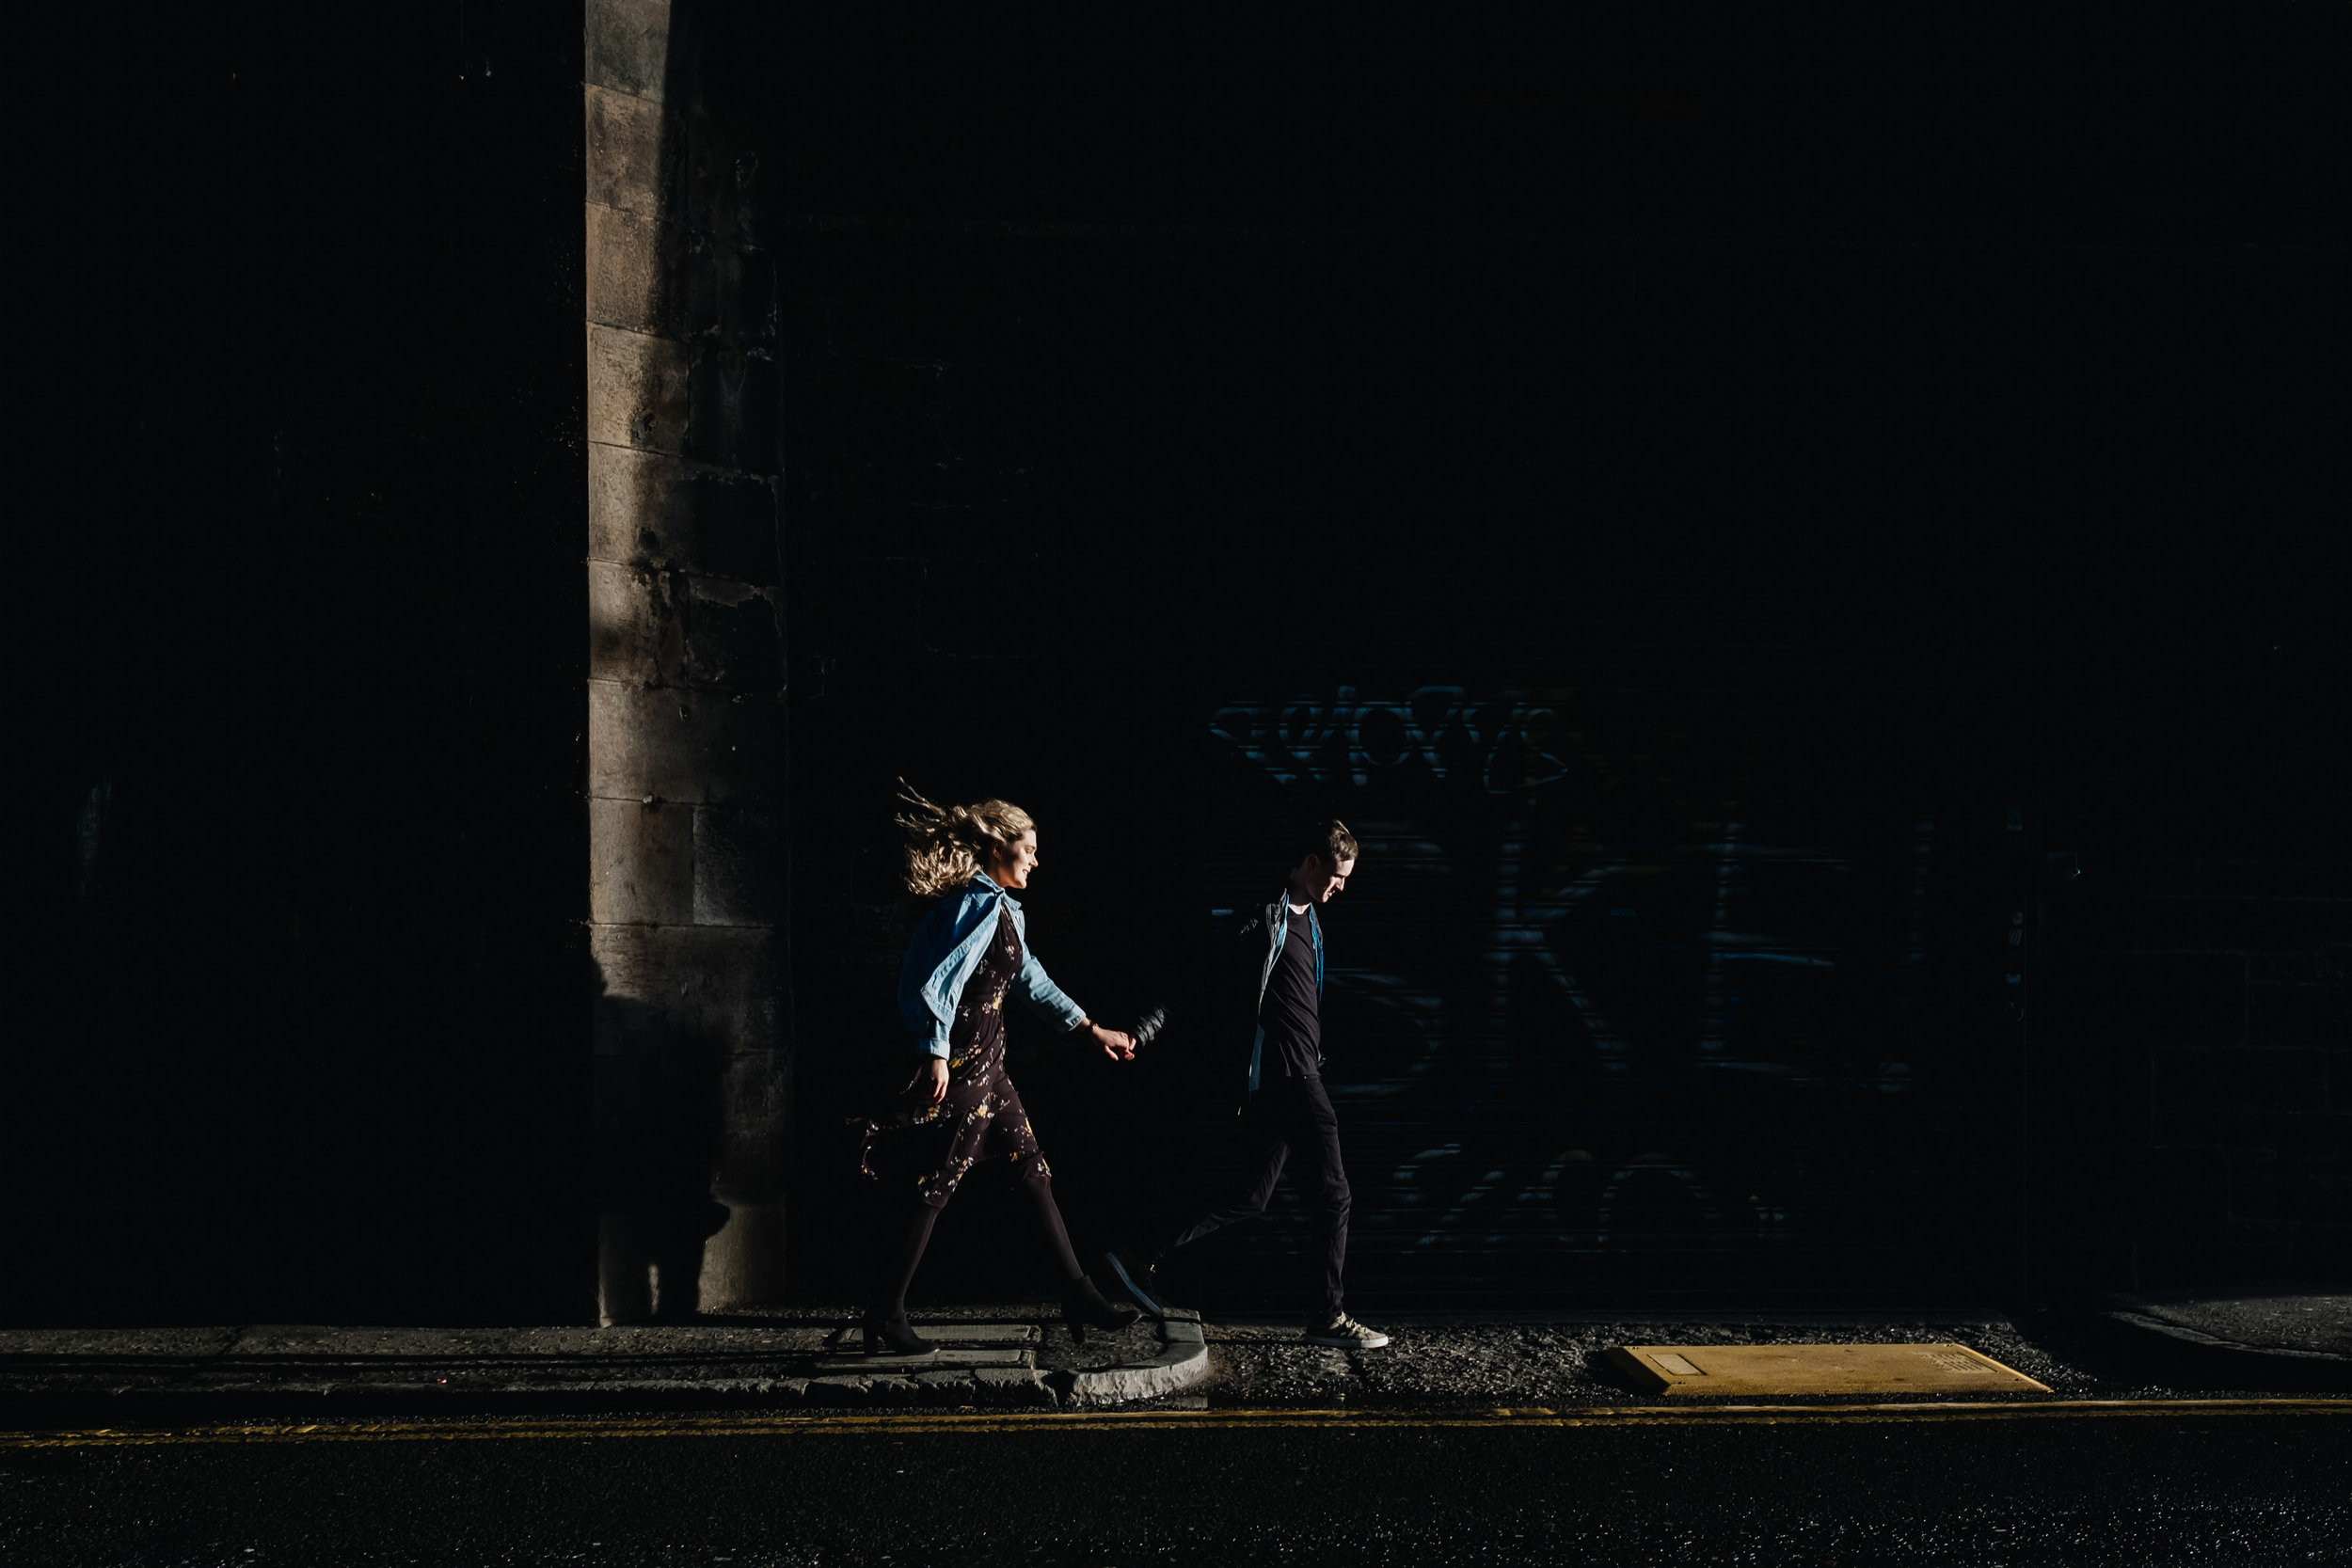 a couple are walking in shadow, holding hands with the sun falling on their faces.